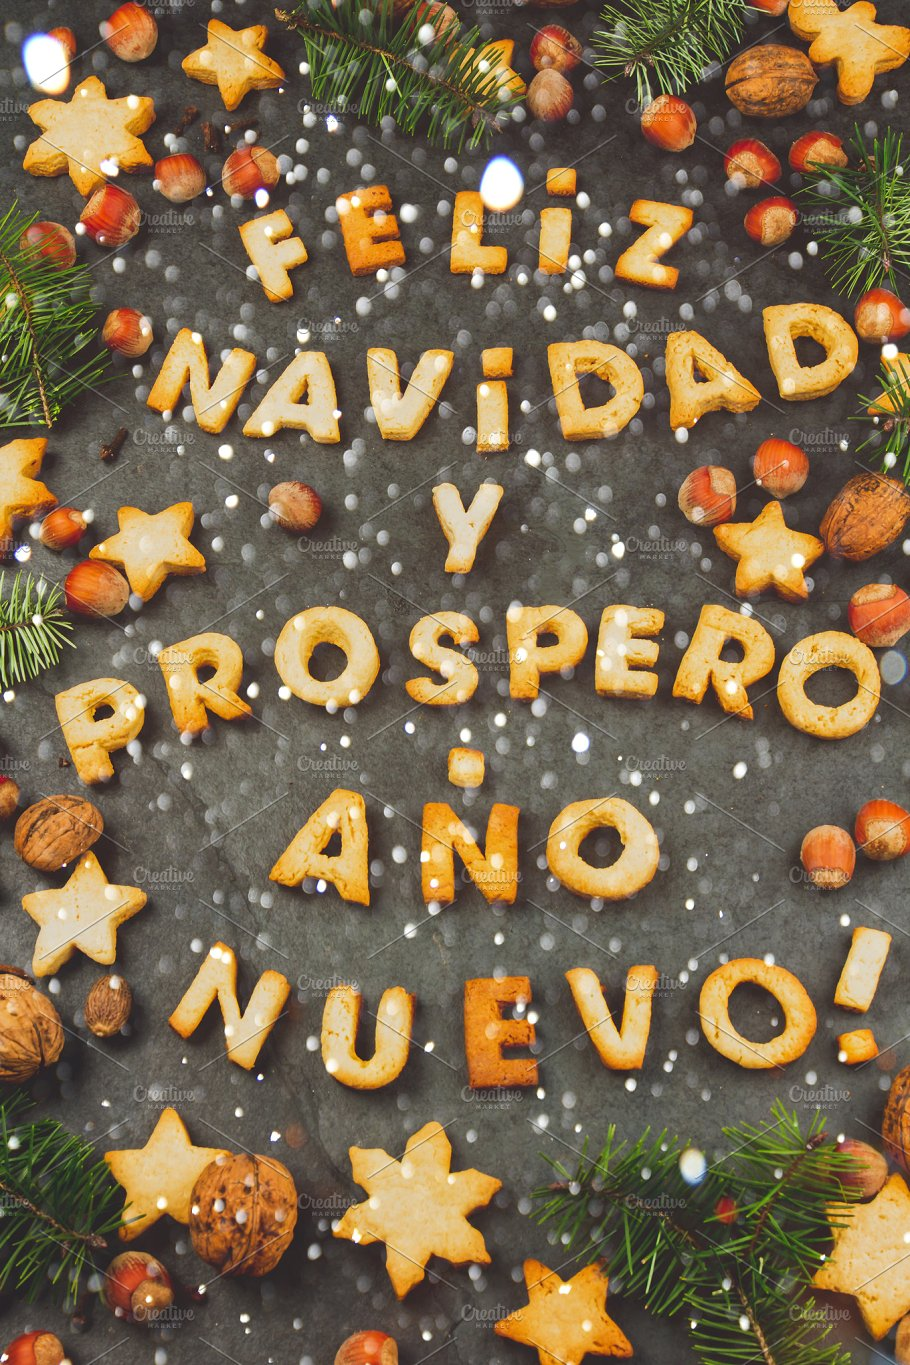 words text merry christmas and happy new year en spanish with baked